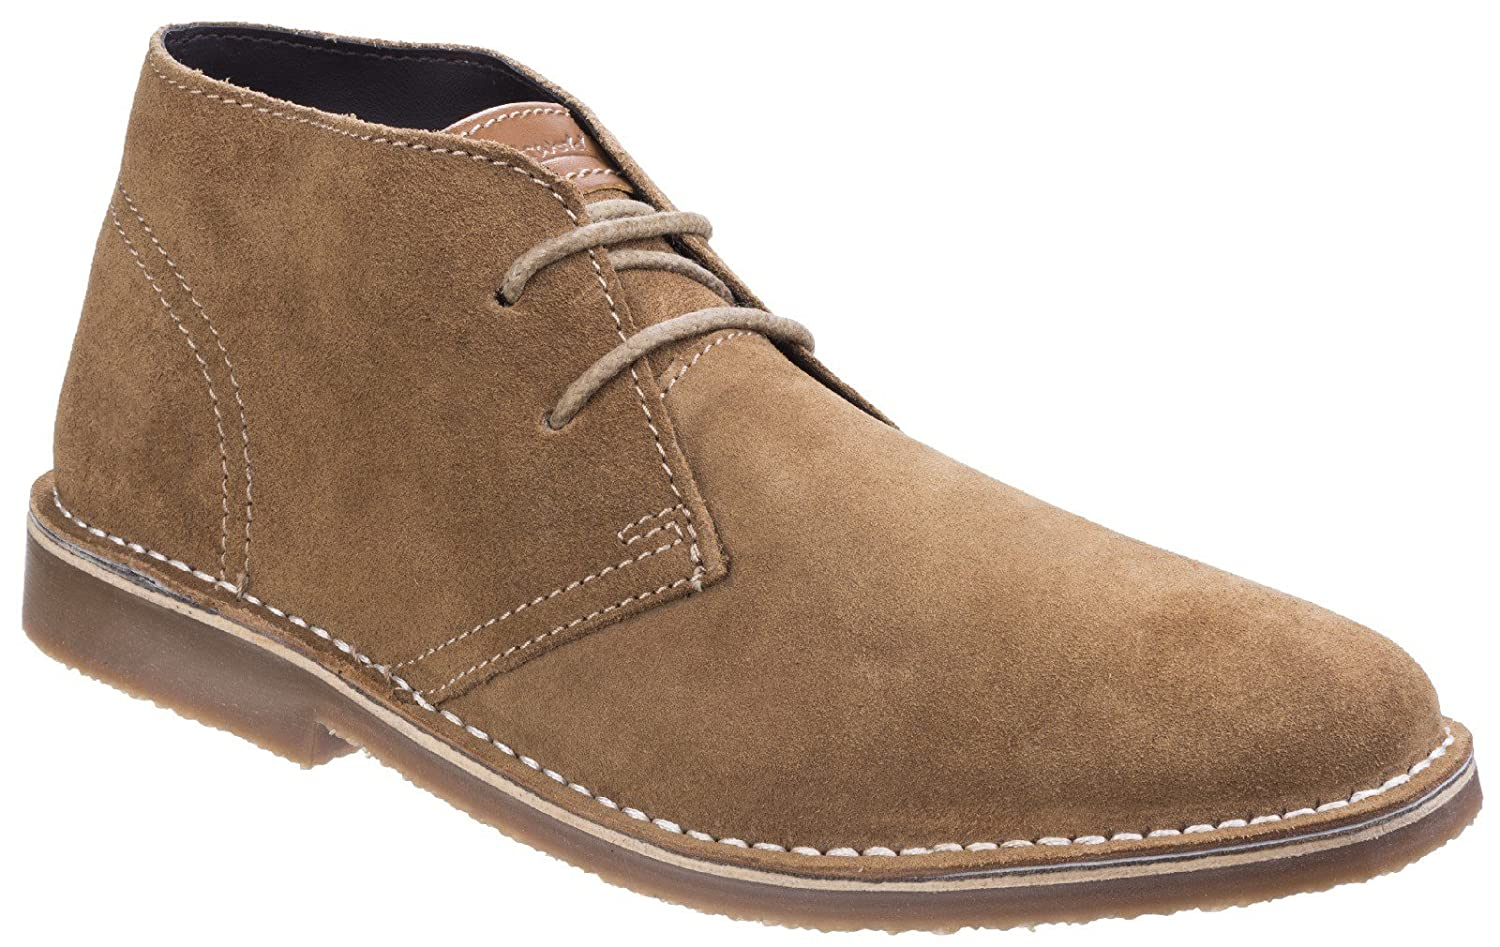 Tan Cotswold Mens Fairford Suede Leather Light Smart Casual Desert Stiefel